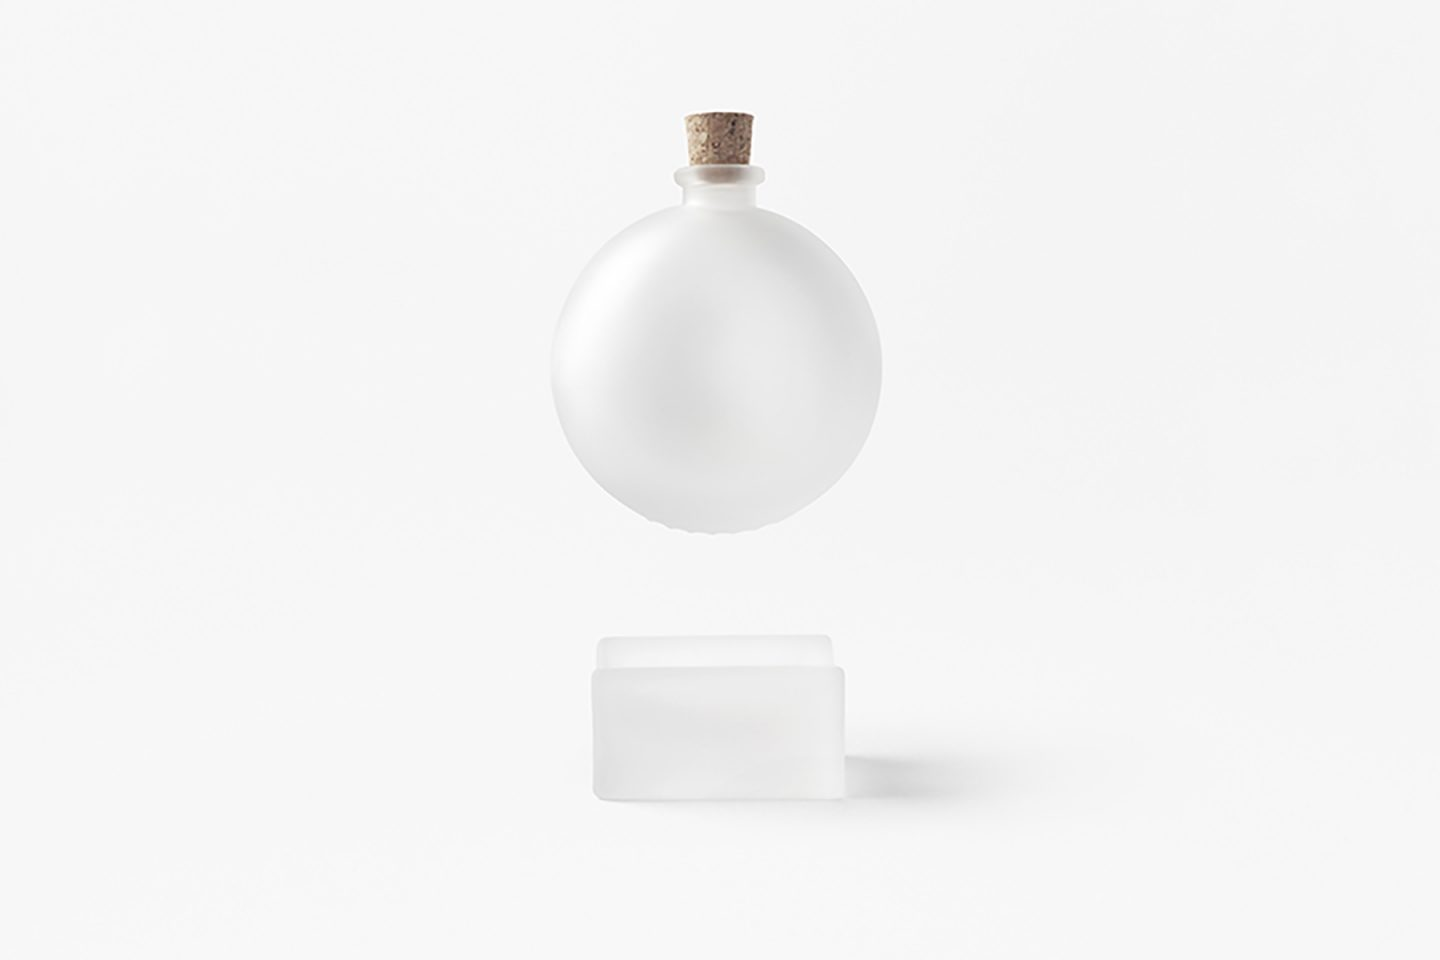 IGNANT-Design-Nendo-Pepper-Pestle-1